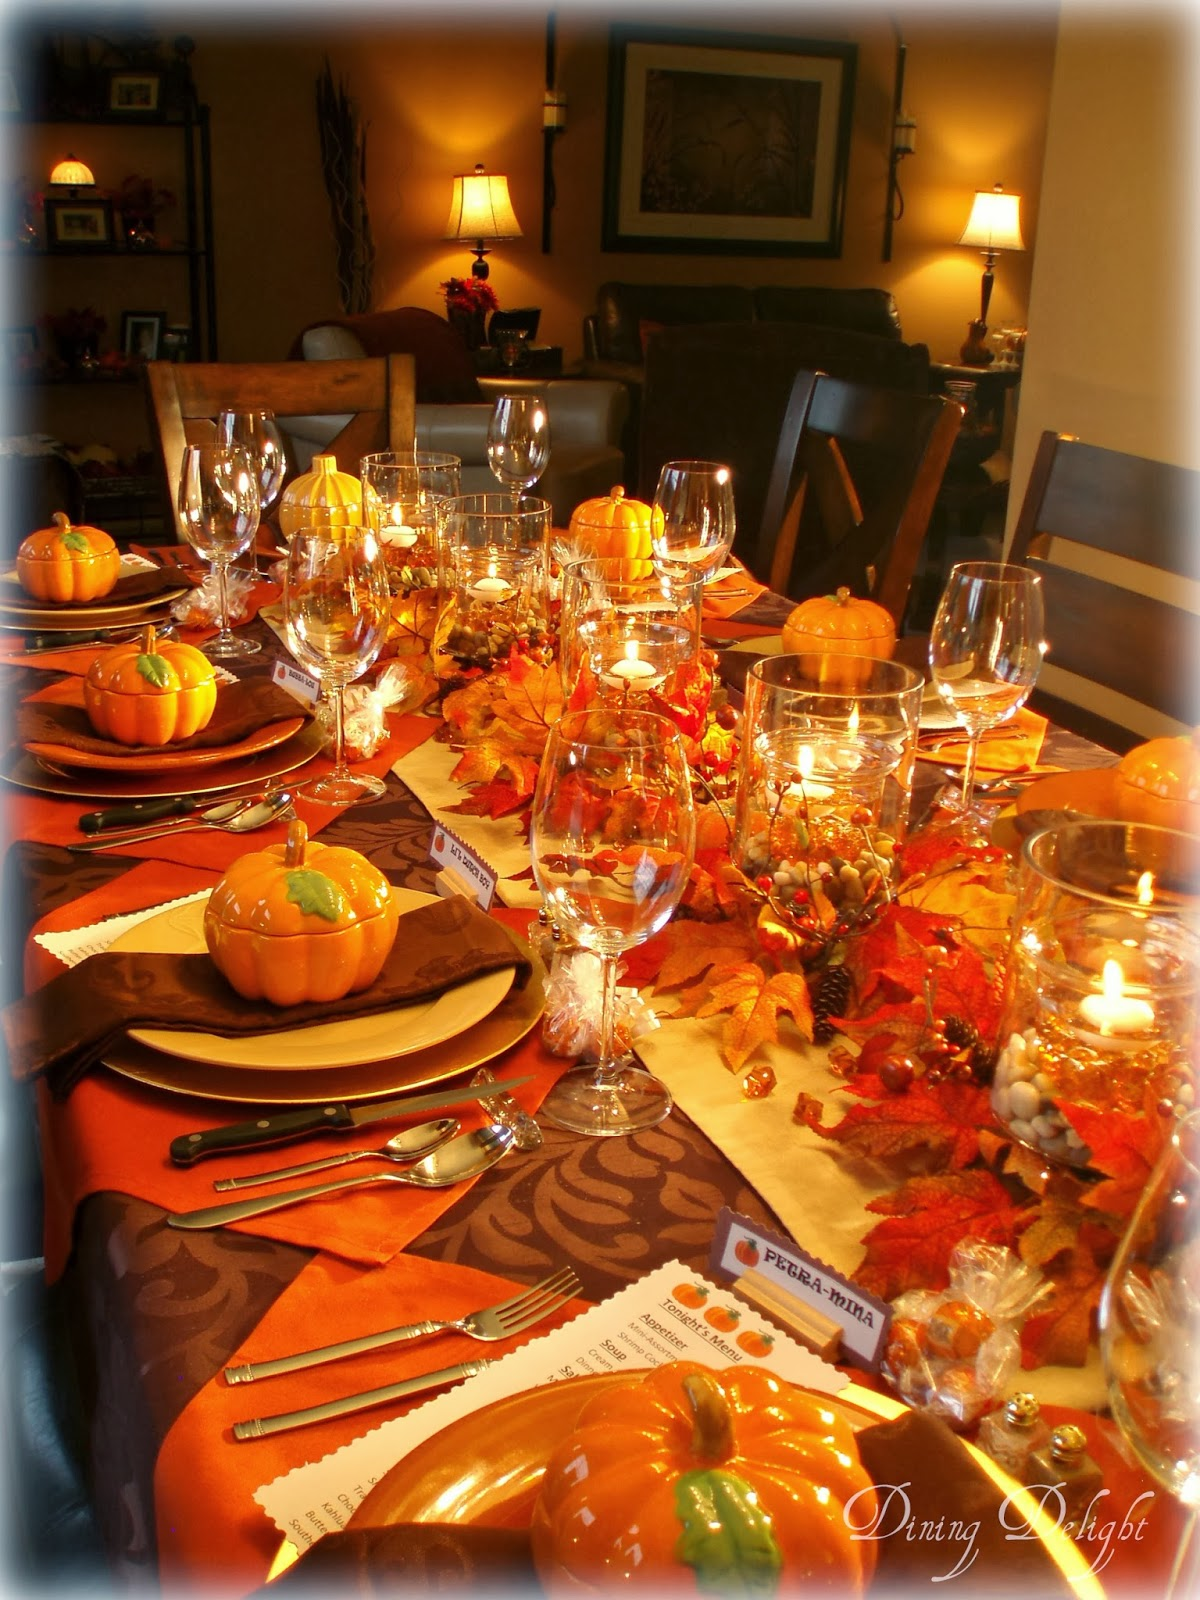 Dining delight fall dinner party for ten Fall decorating ideas for dinner party